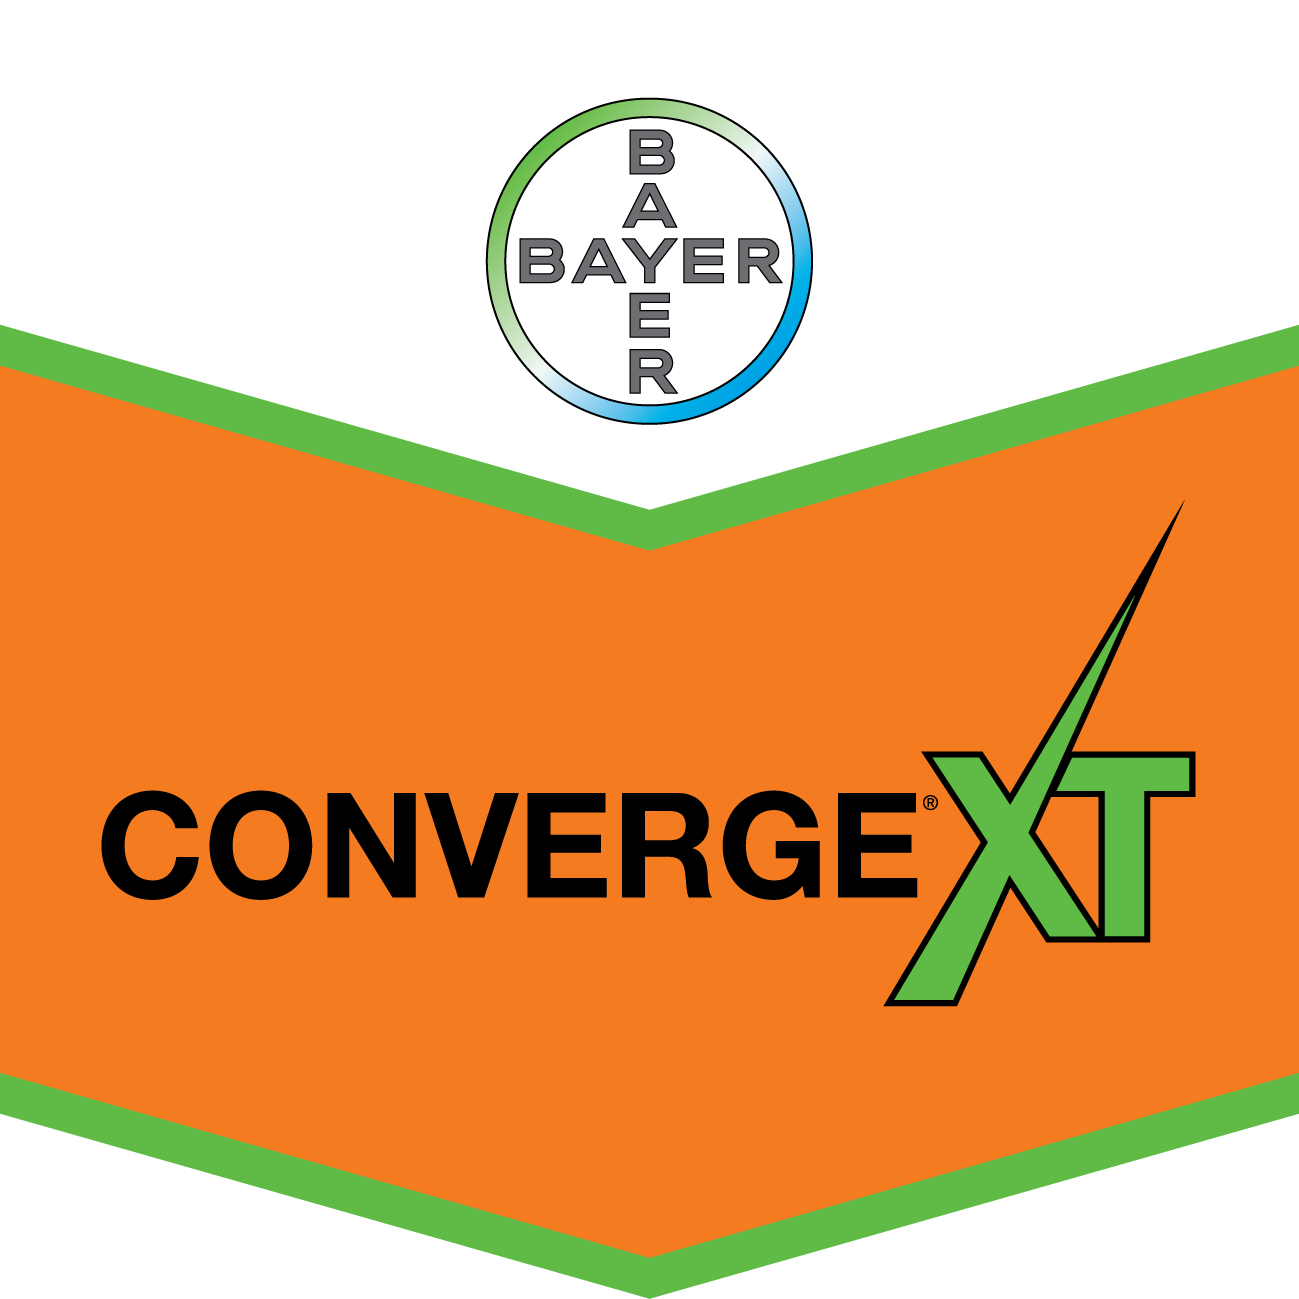 Bayer ConvergeXT logo